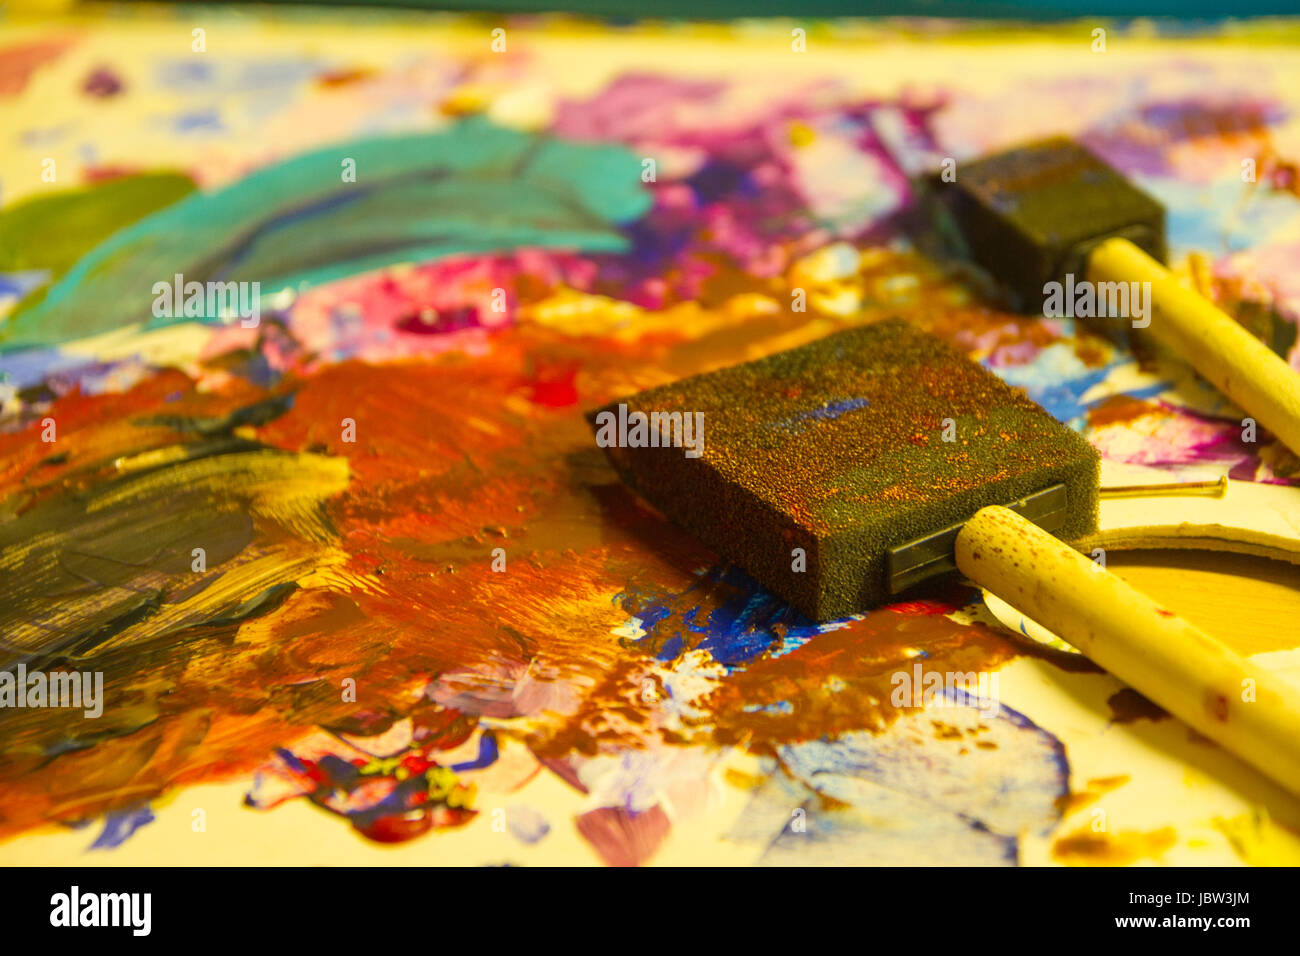 Artiste painting with sponge brushes deposited on paper - Stock Image